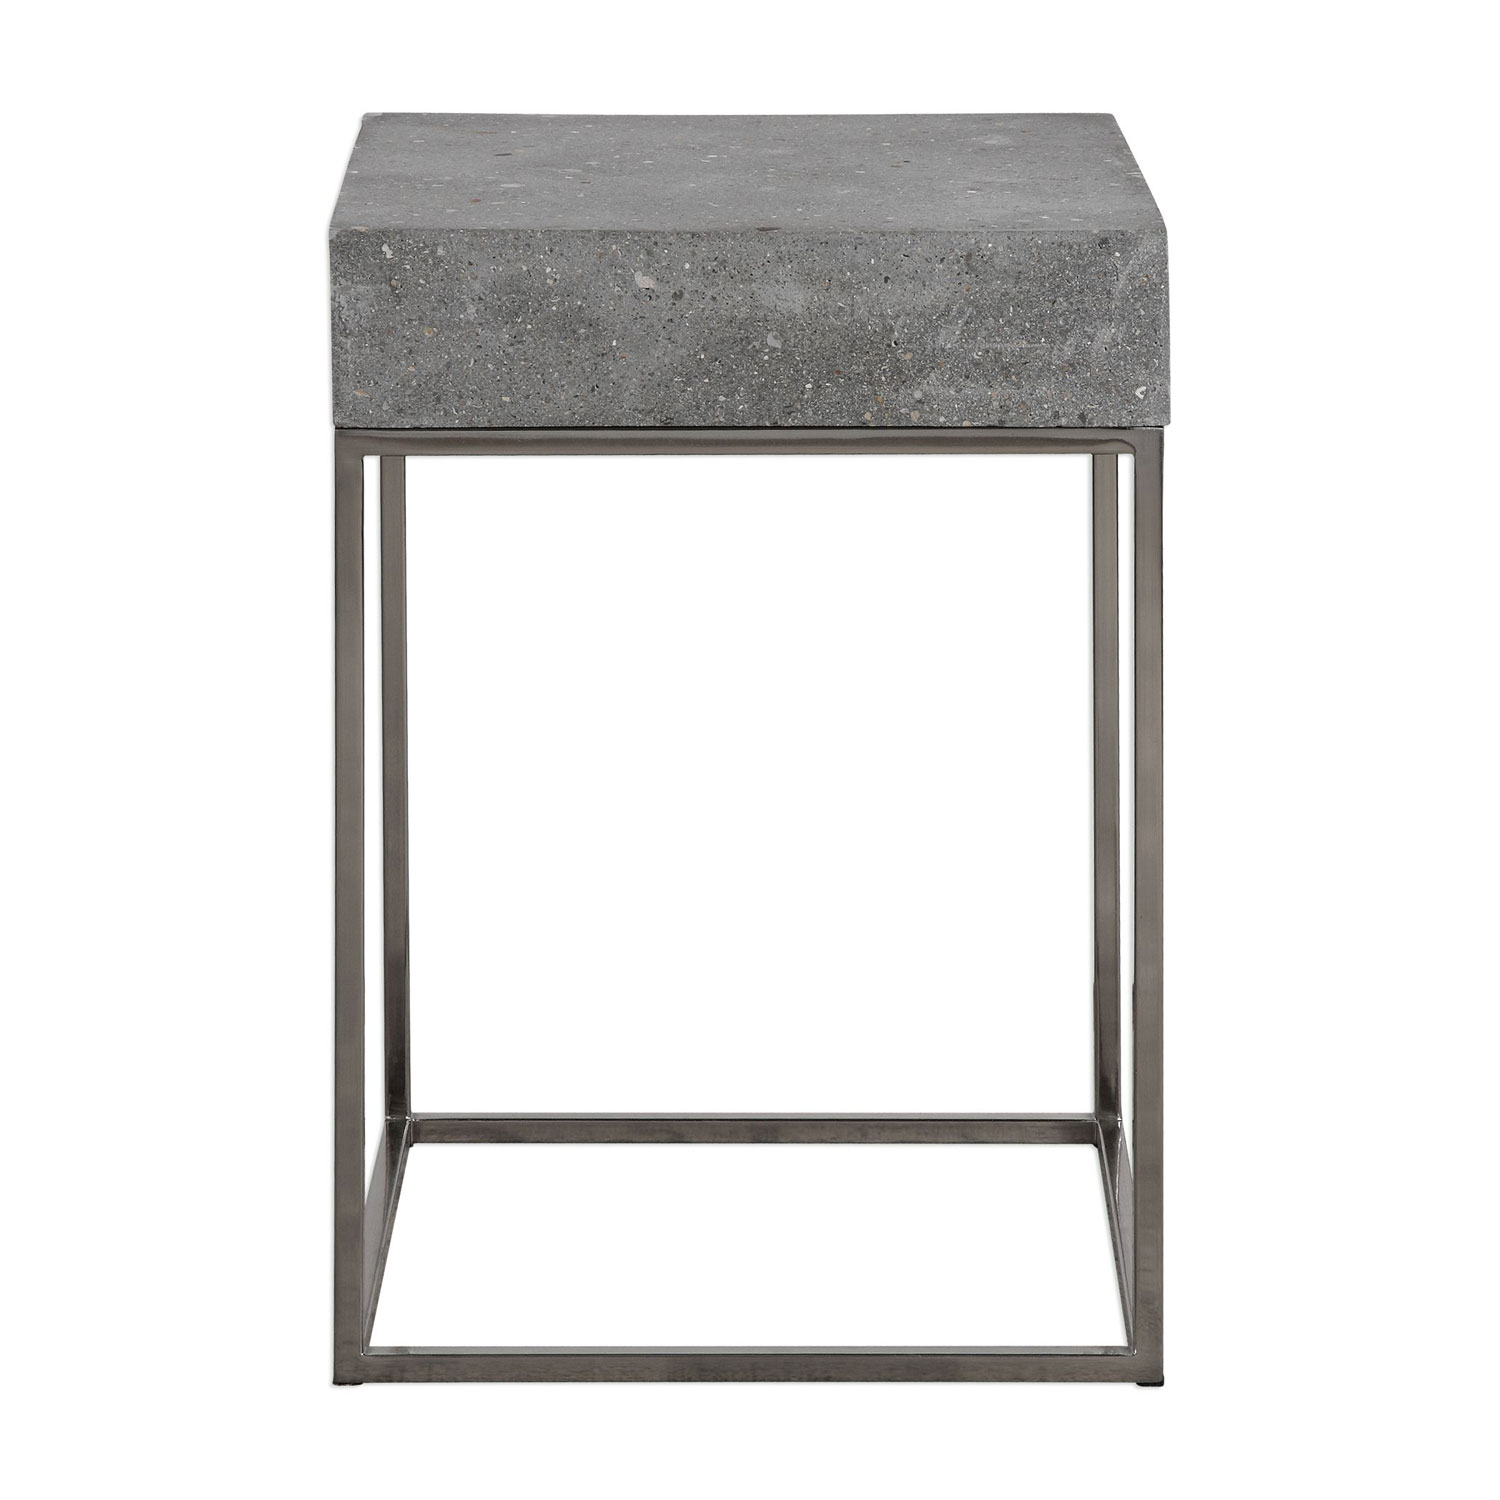 uttermost jude concrete accent table high end tables hover zoom clamp lamp black round patio office furniture chair mirrored side unit zinc coffee ikea storage ideas glass pottery